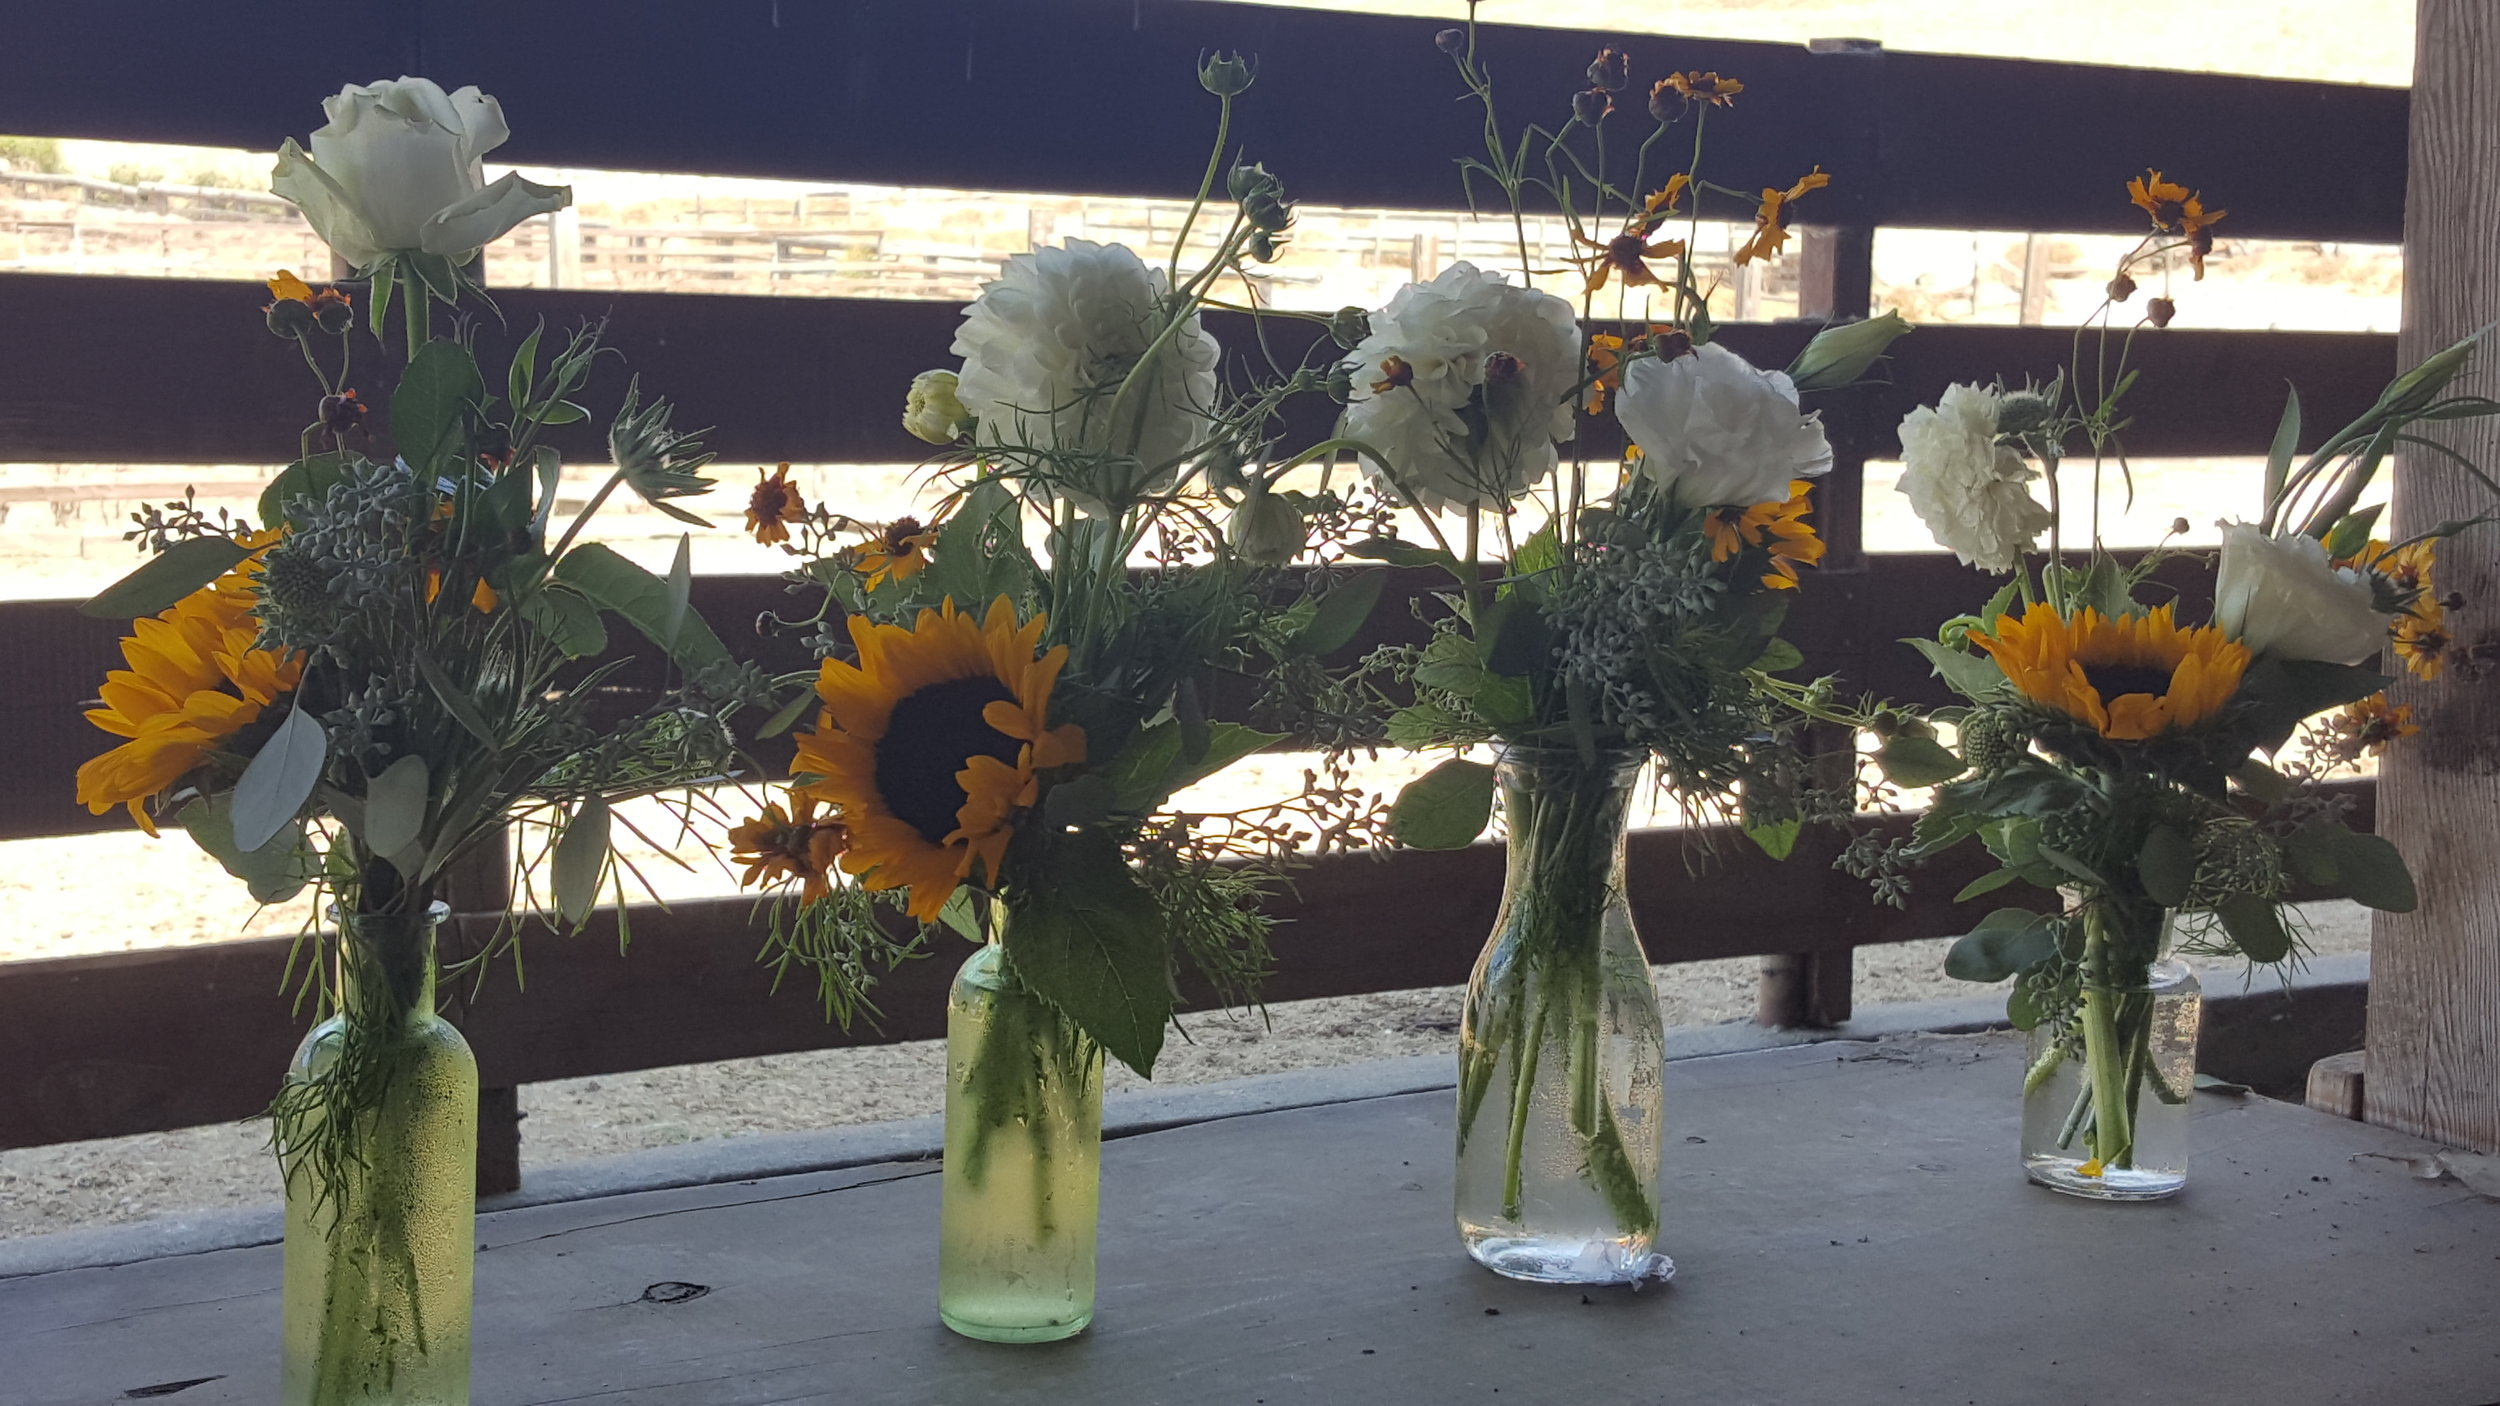 Milk bottle vases with local wild flowers line farm tables for rustic barn wedding centerpiece flowers.